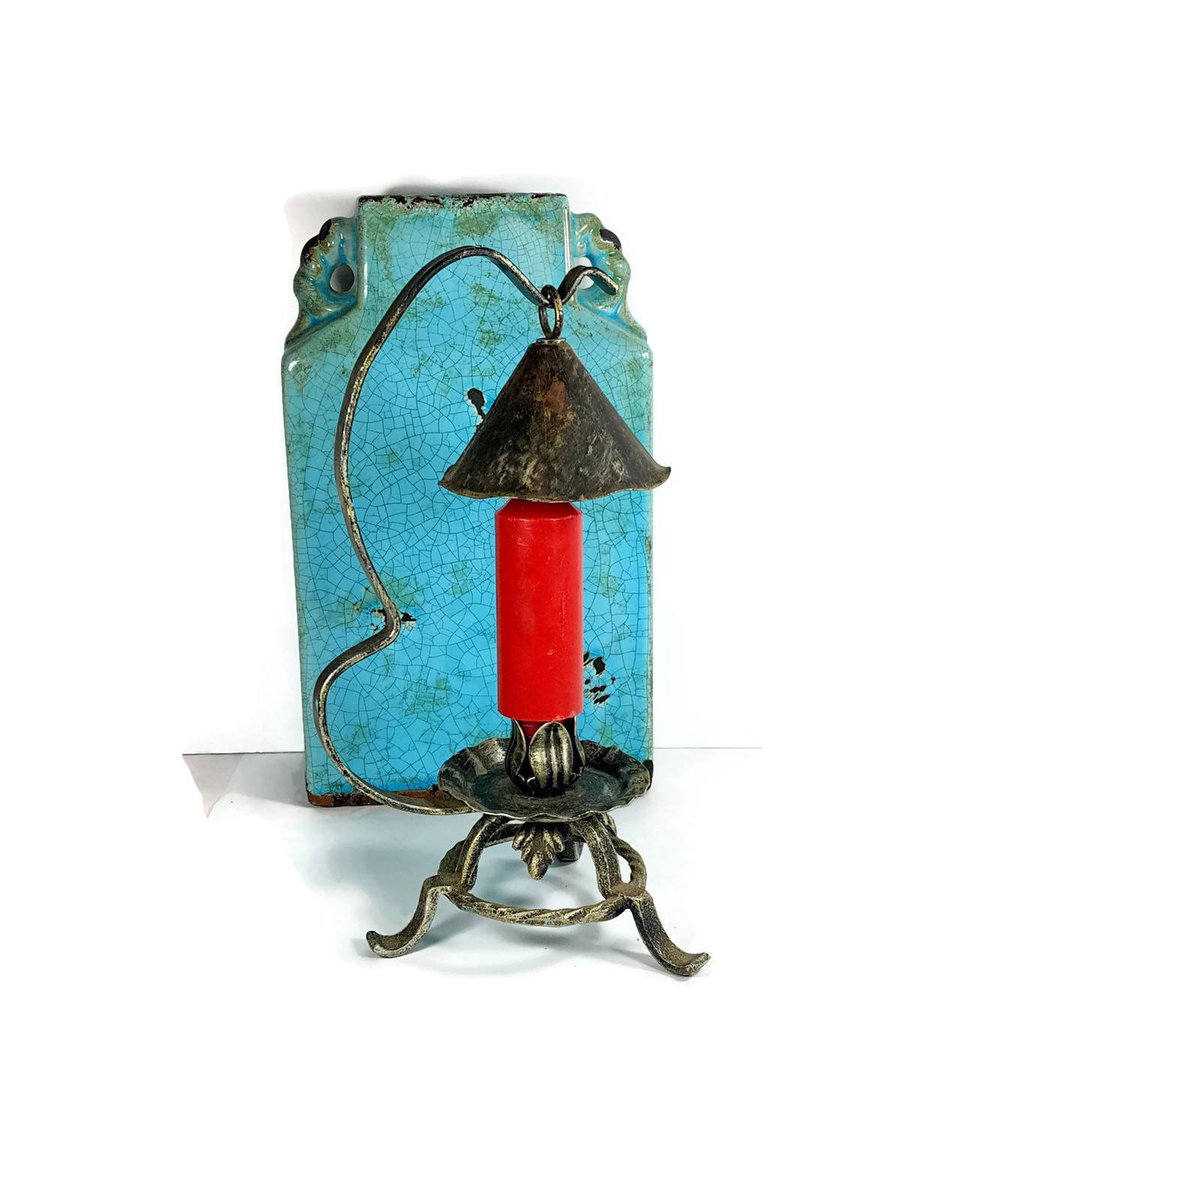 Last Tango Vintage Shop On Twitter Rustic Boho Candle Holder Vintage Bohemian Candlestick 12 Lamp Unique Candle Holder Black And Silver Primitive Style Https T Co Ggk7cco2sg Etsy Lasttangovintage Kitsch Vintage Uniquecandleholder Https T